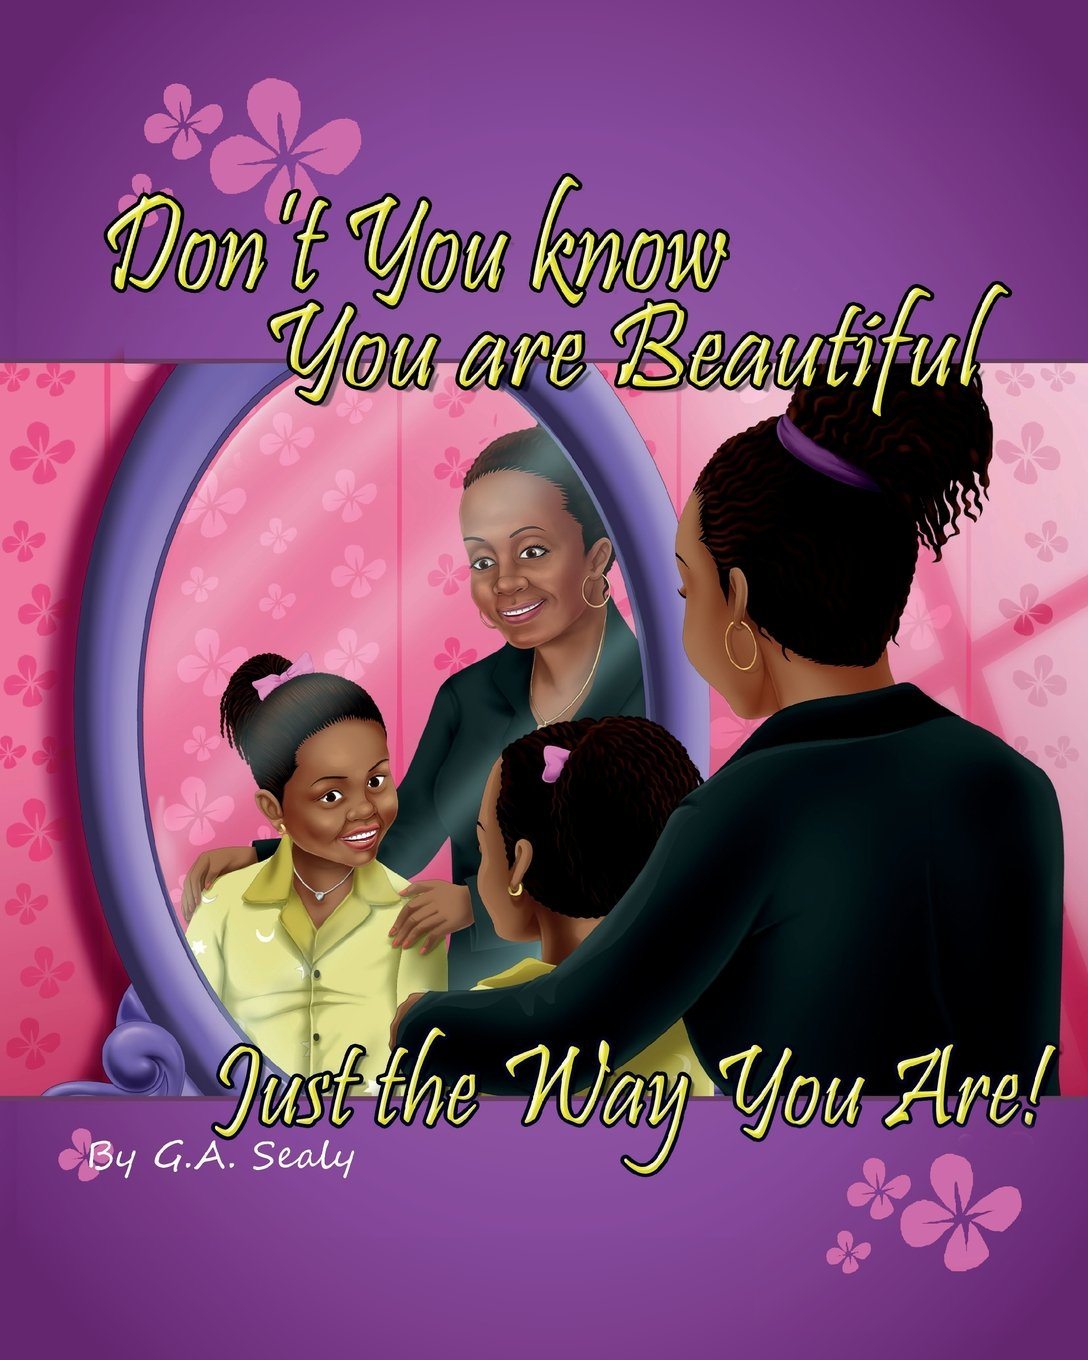 Don't You Know You are Beautiful Just the Way You Are!